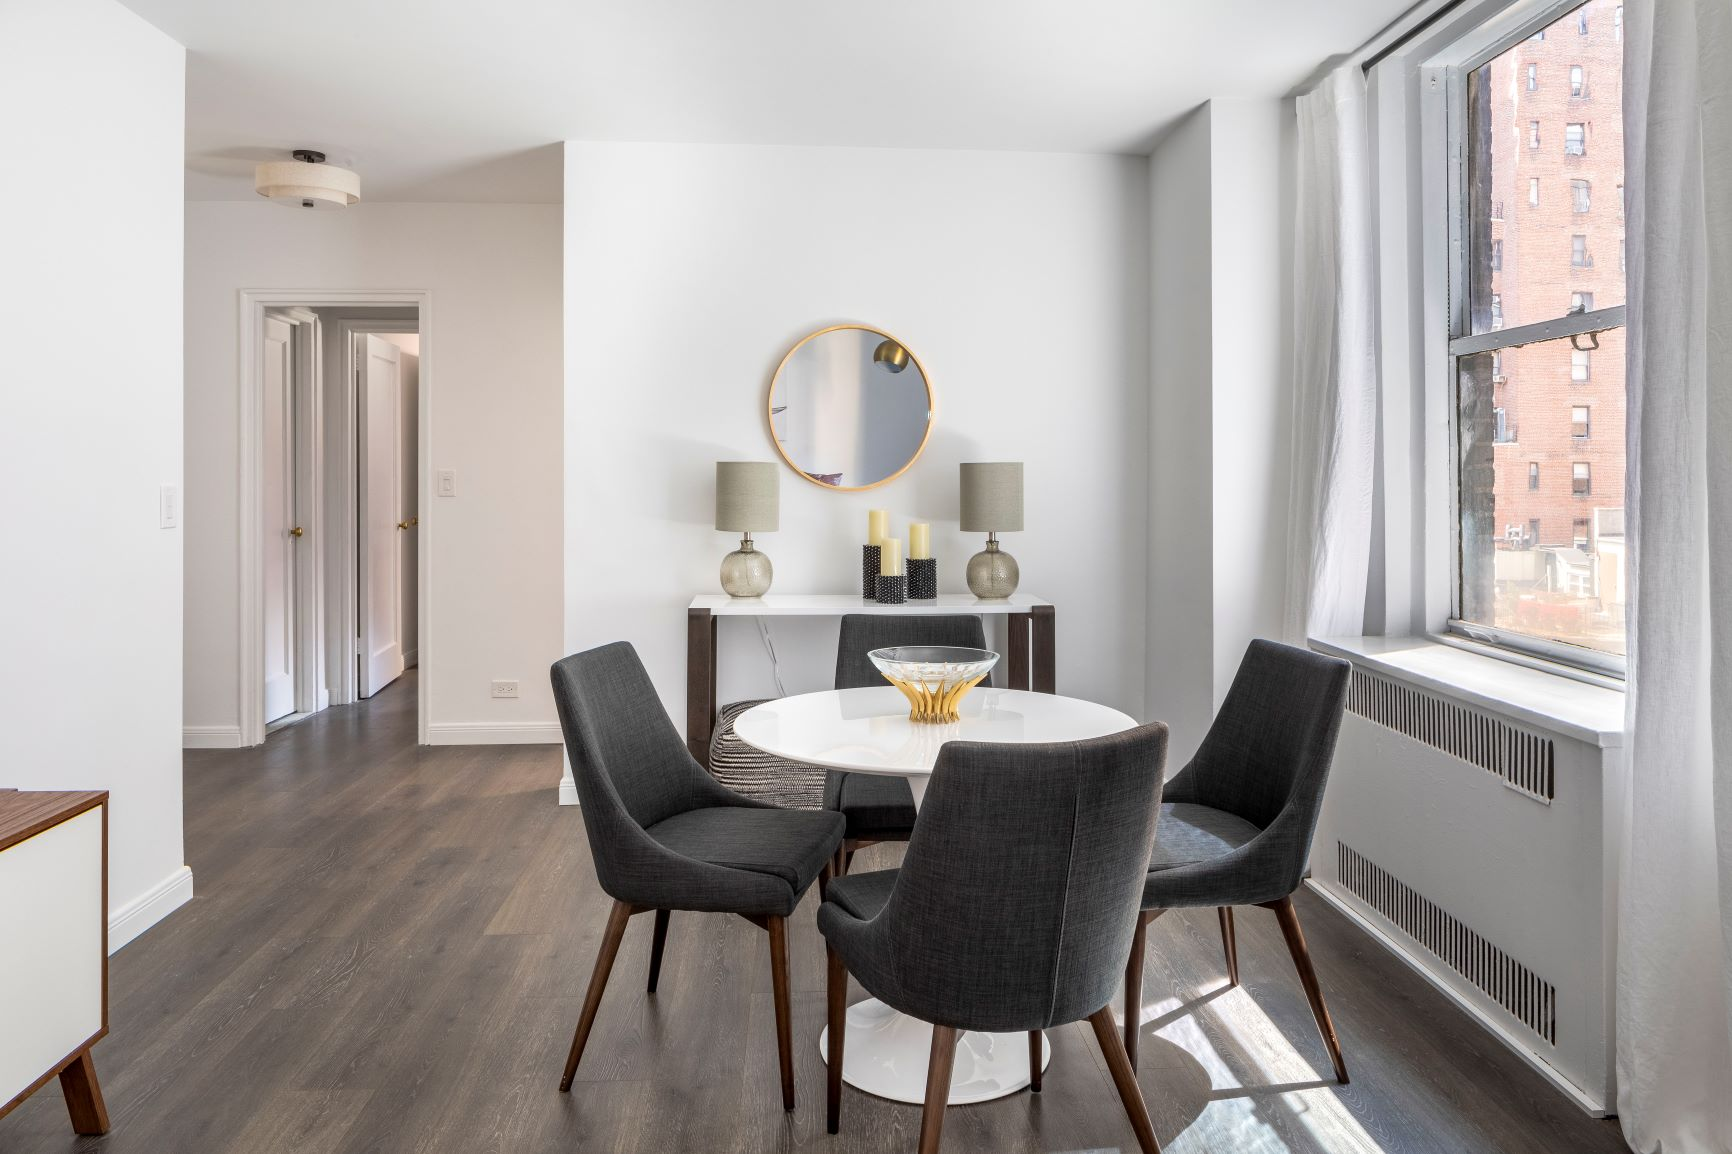 West End Avenue 263, New York, New York, New York, United States 10023, 1 Bedroom Bedrooms, ,1 BathroomBathrooms,Co-op,FOR SALE,Riverside Towers,263,8,1150